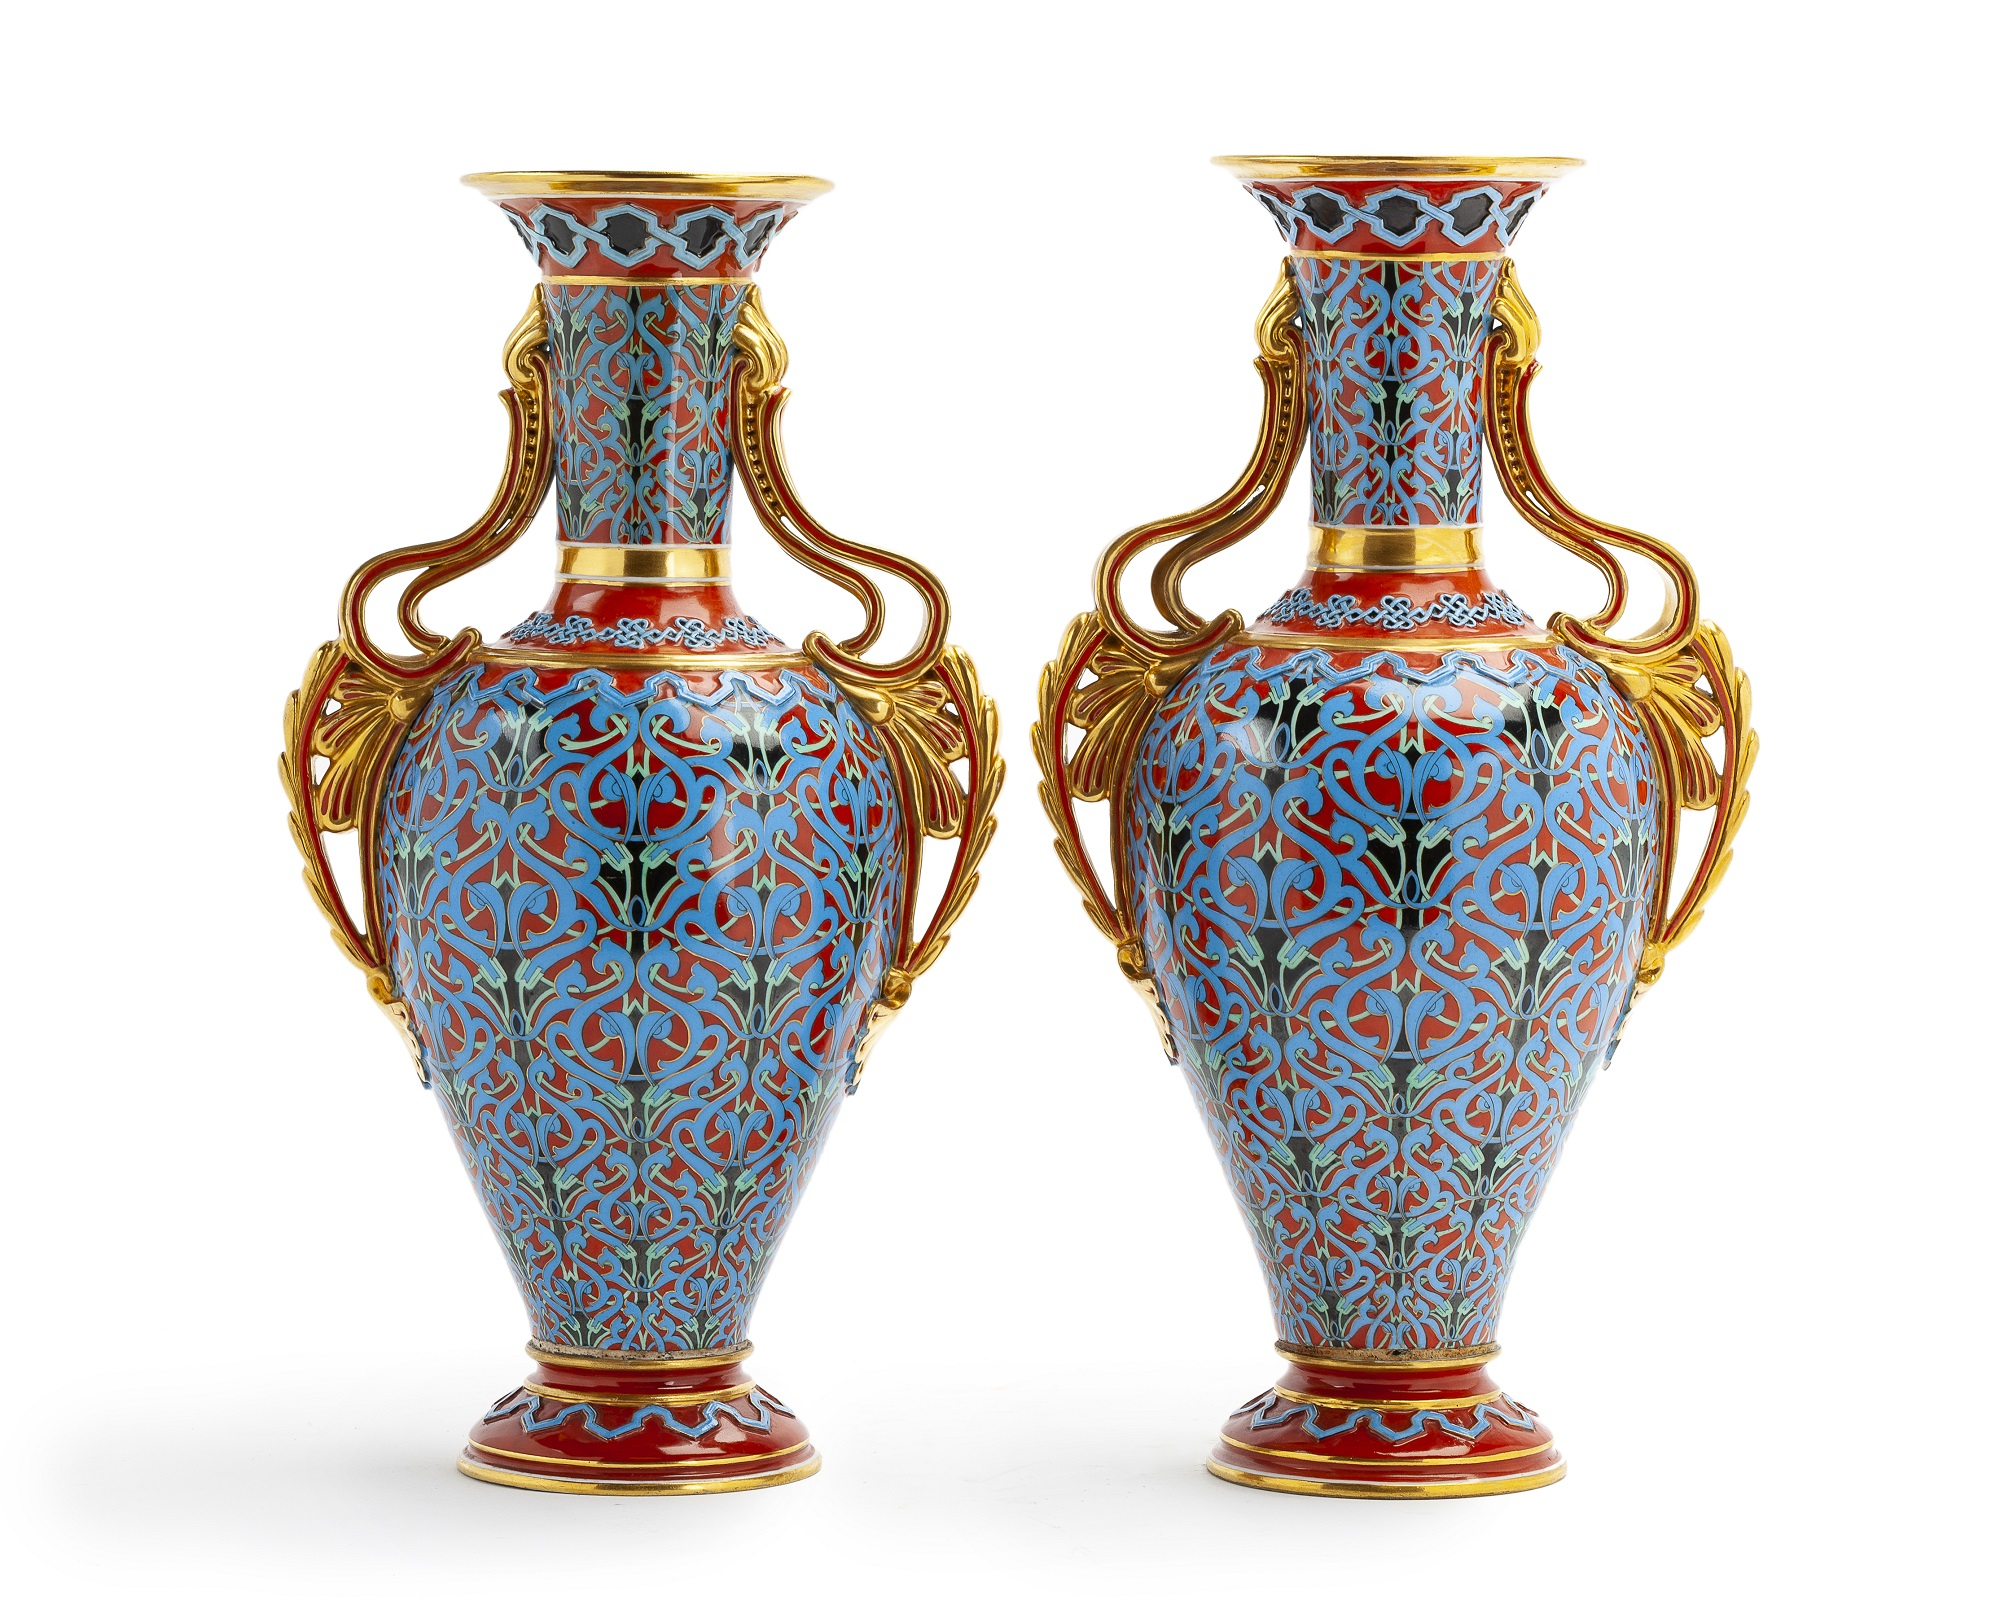 A pair of Russian Imperial porcelain vases